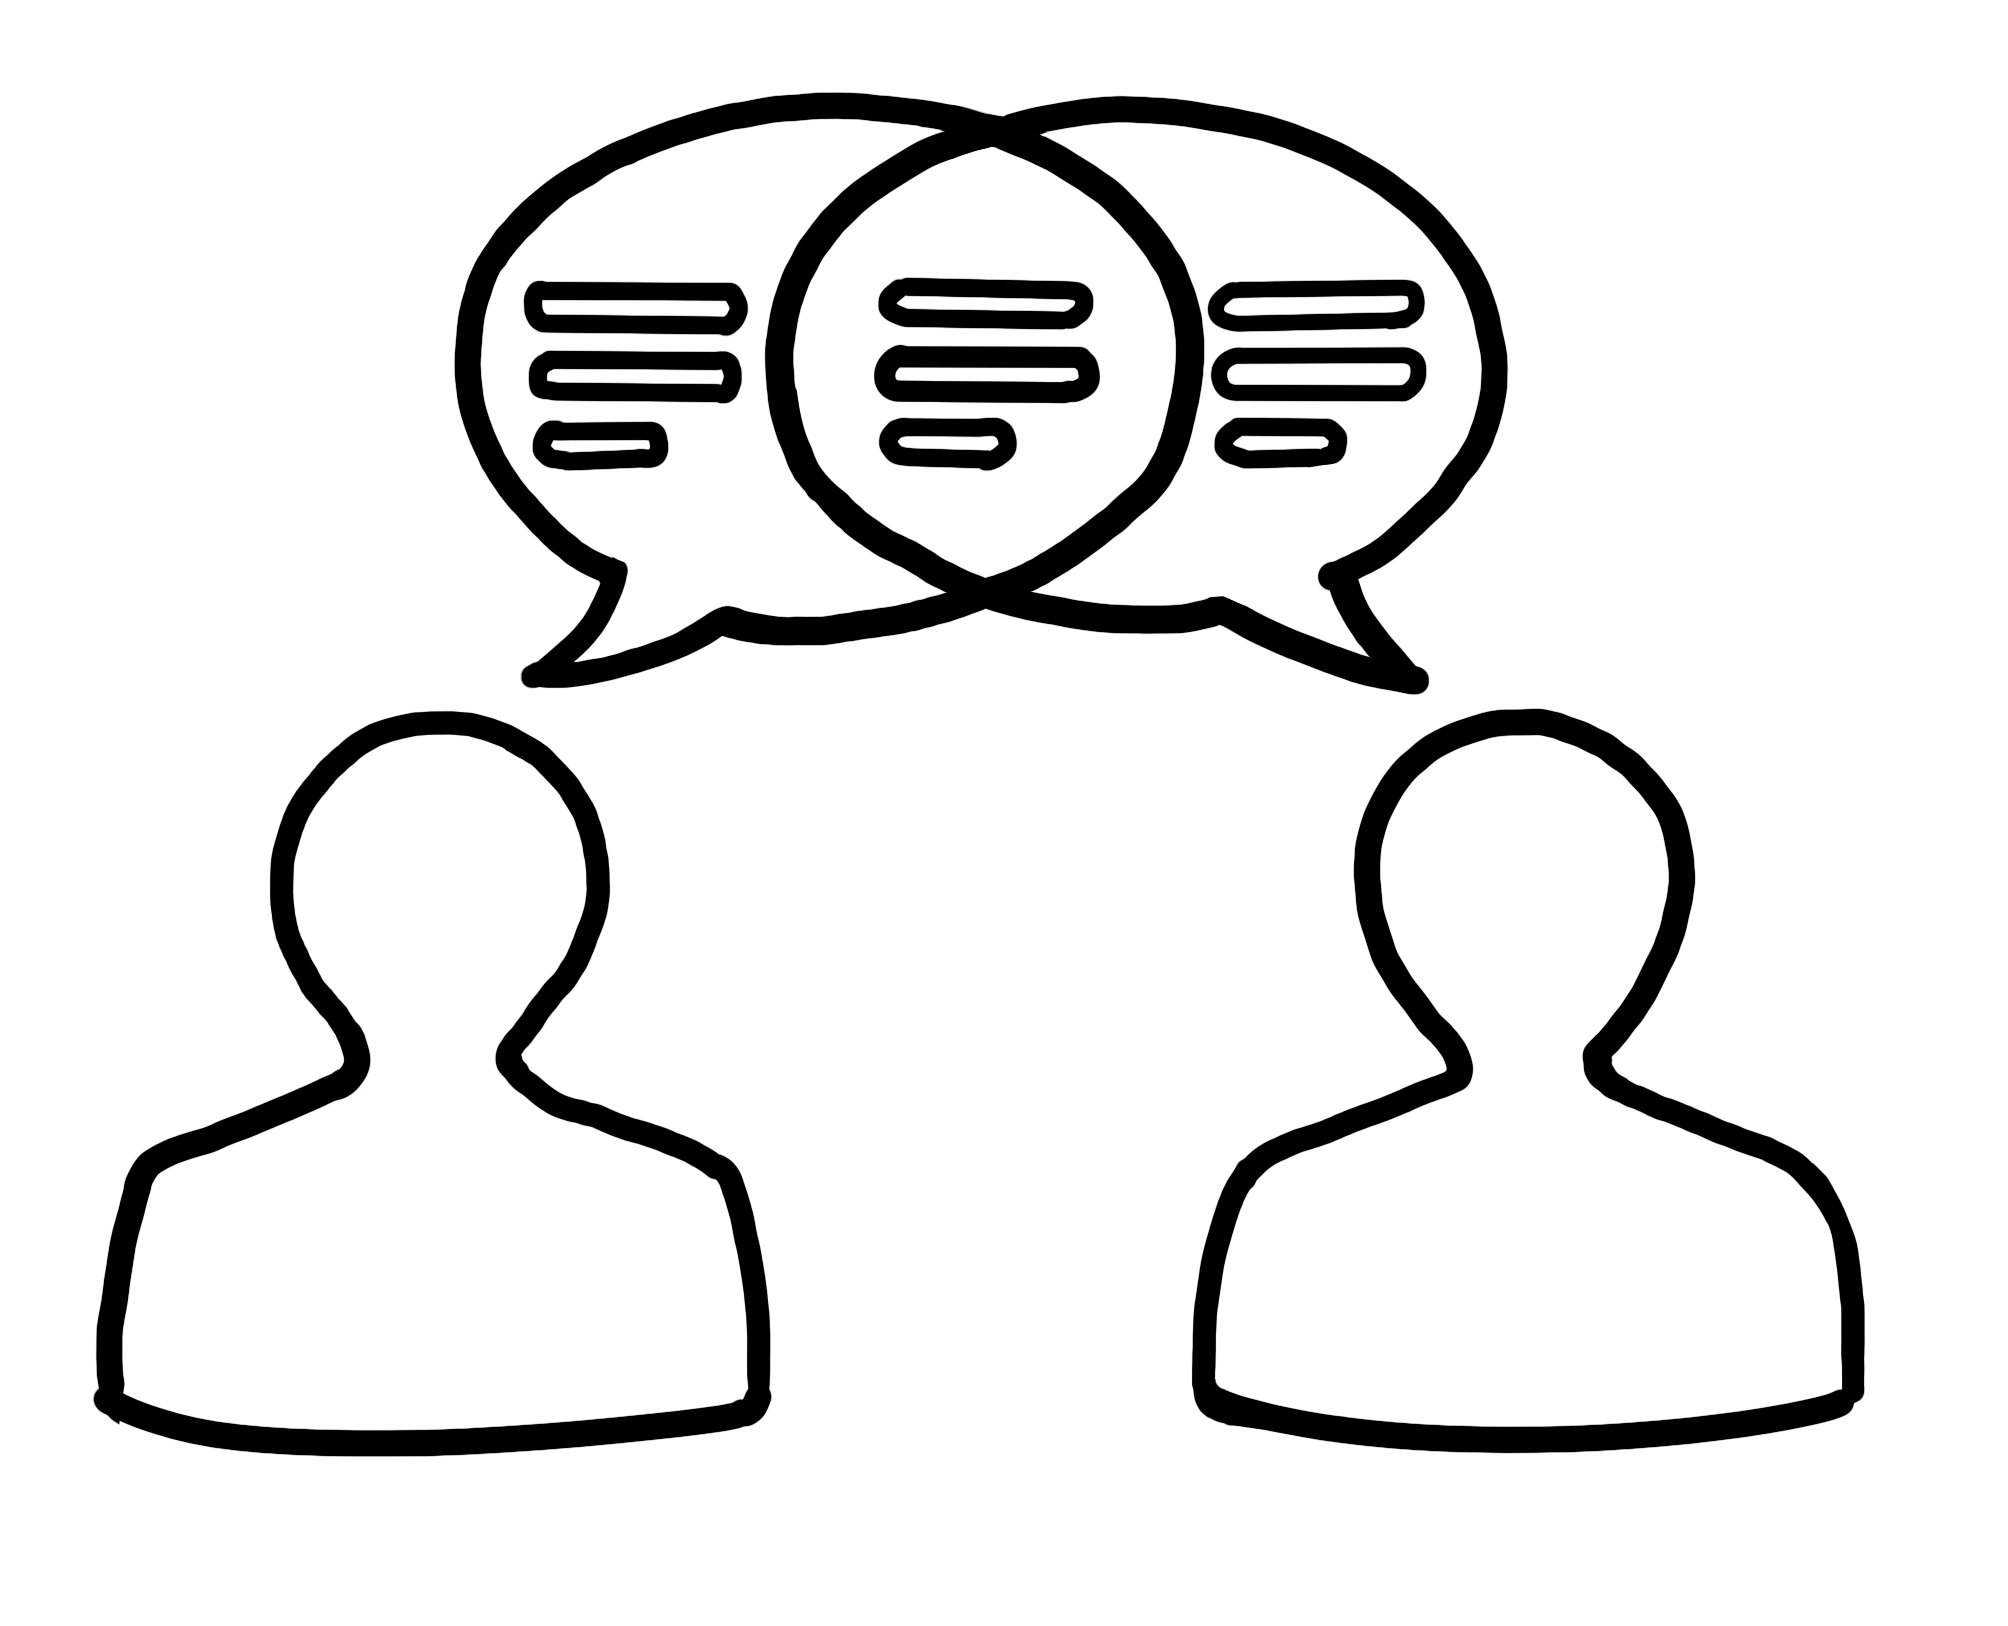 Consider how are you going to communicate your training program to your team